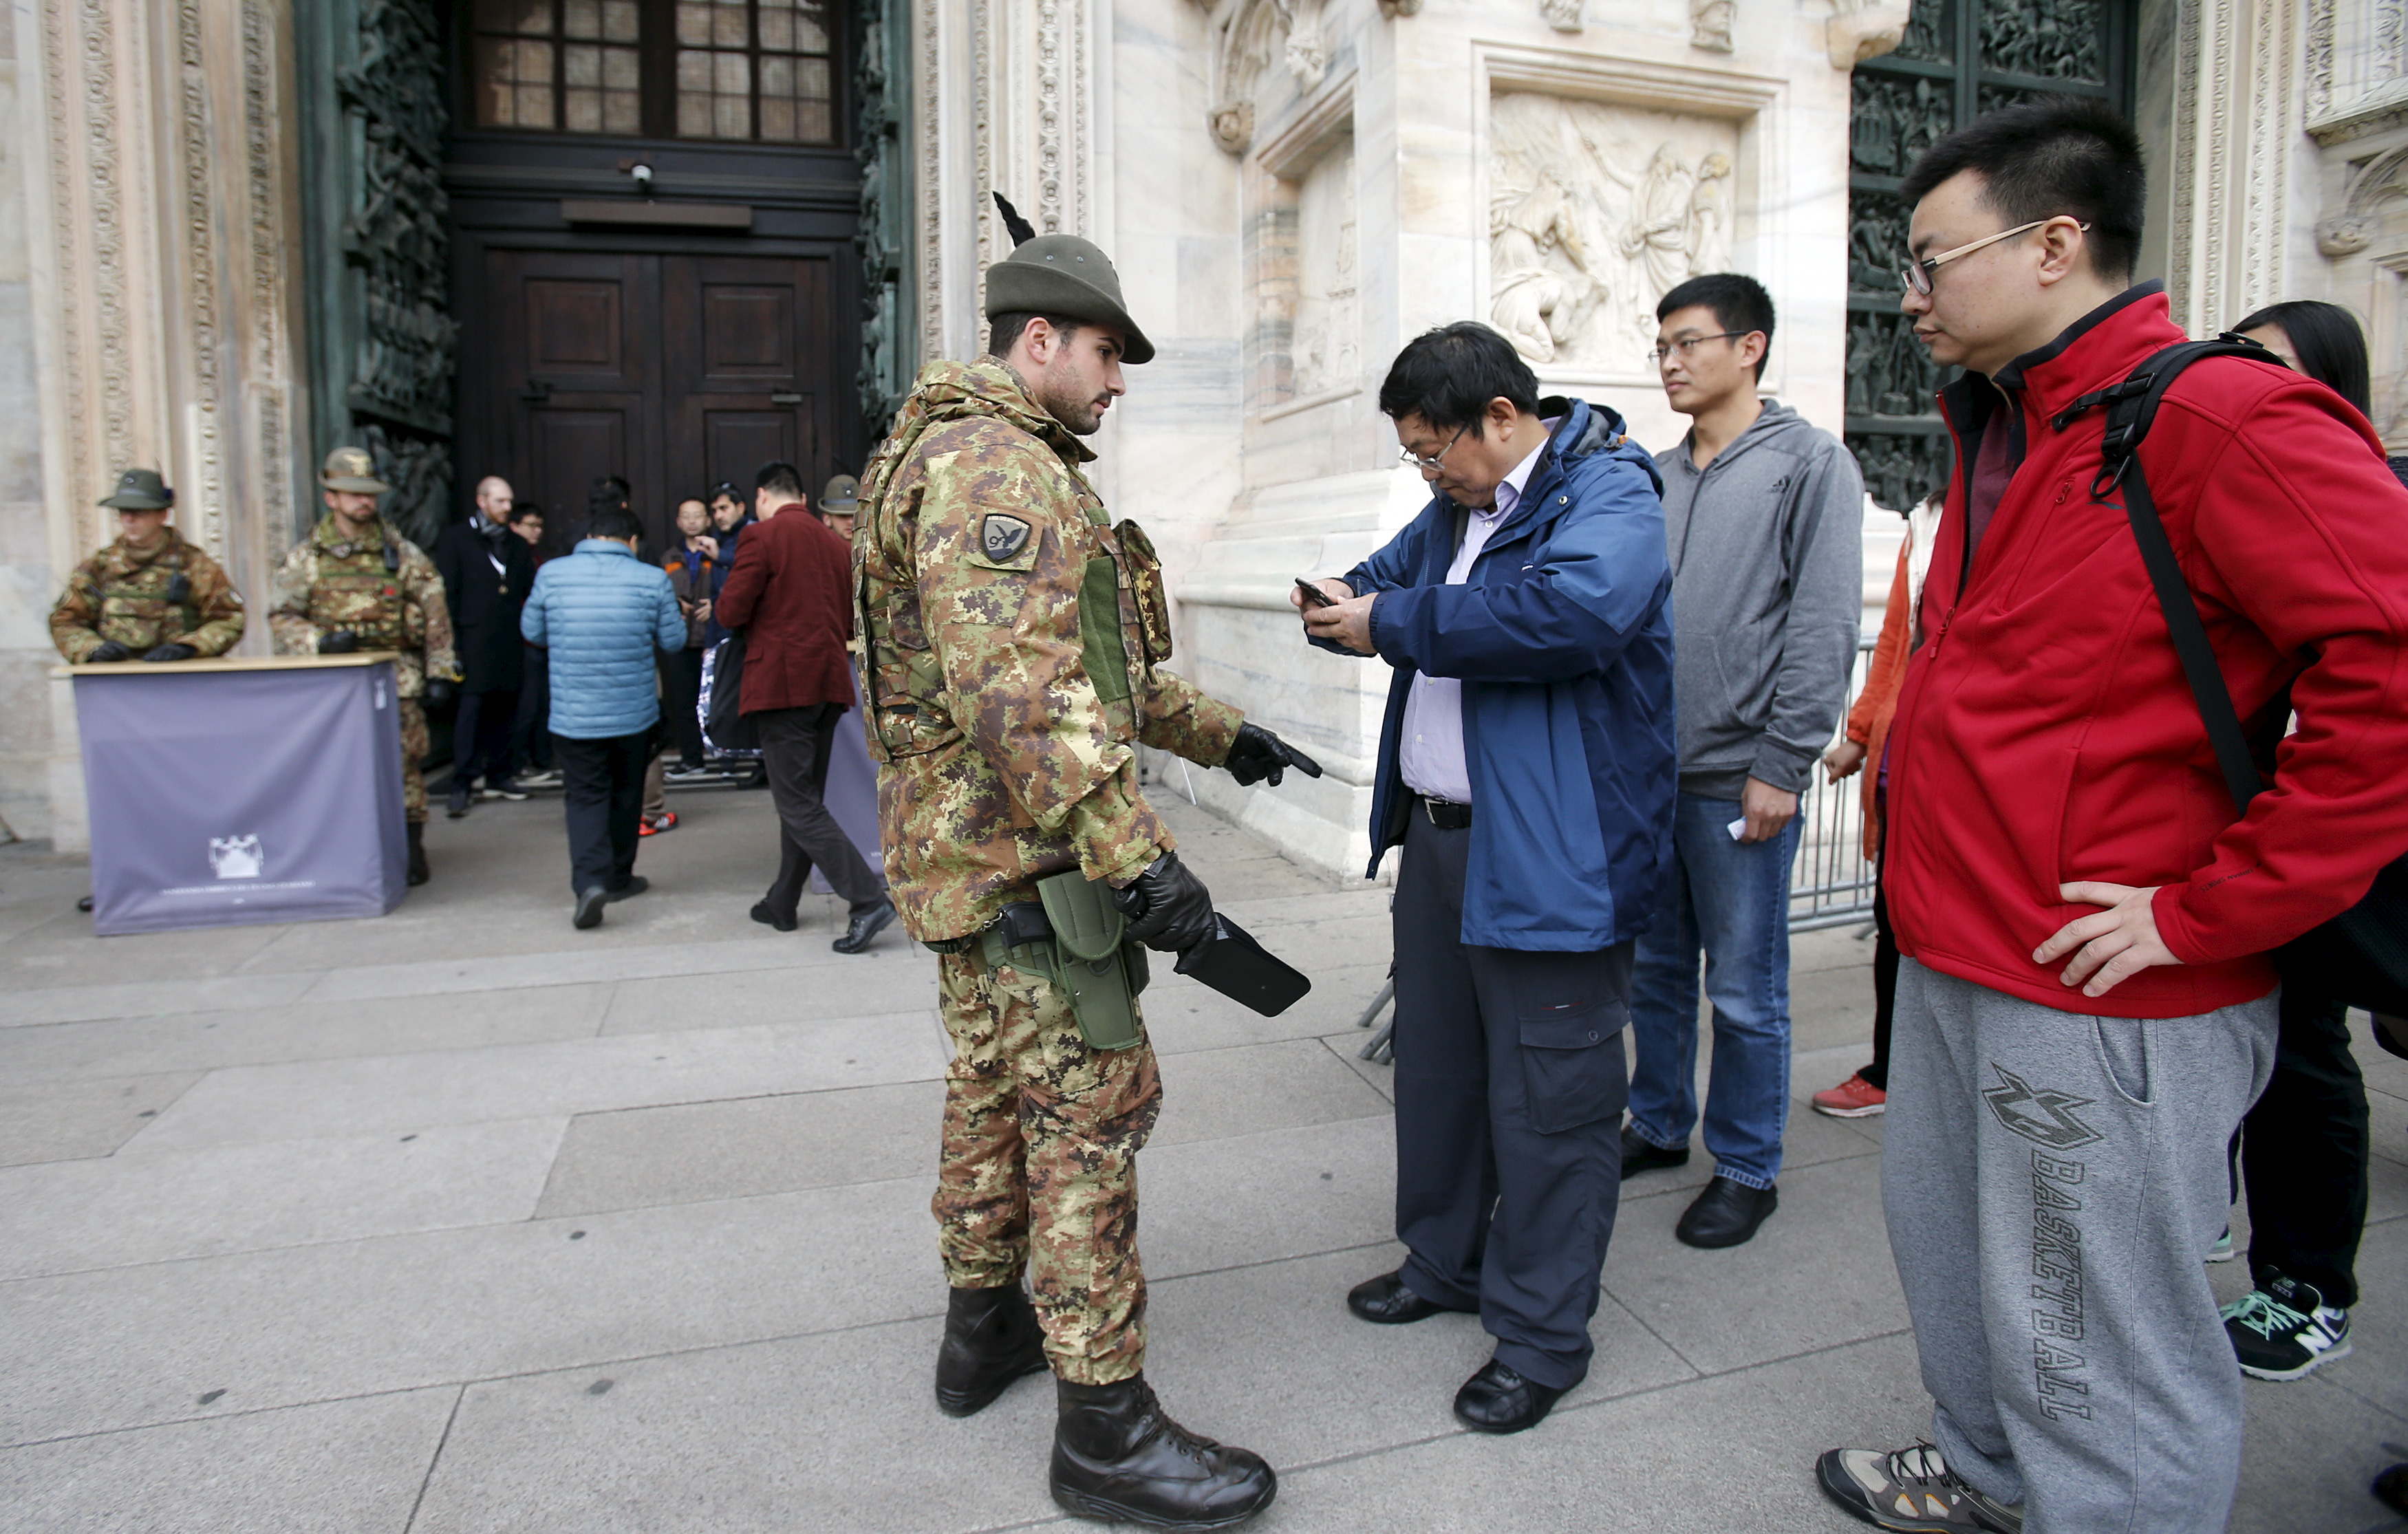 An Alpini Regiment of the Italian Army checks visitors outside the Milan's cathedral, northern Italy, Nov. 20, 2015. Italy and Sweden increased security around public buildings after receiving reports that attacks might be planned on their soil.